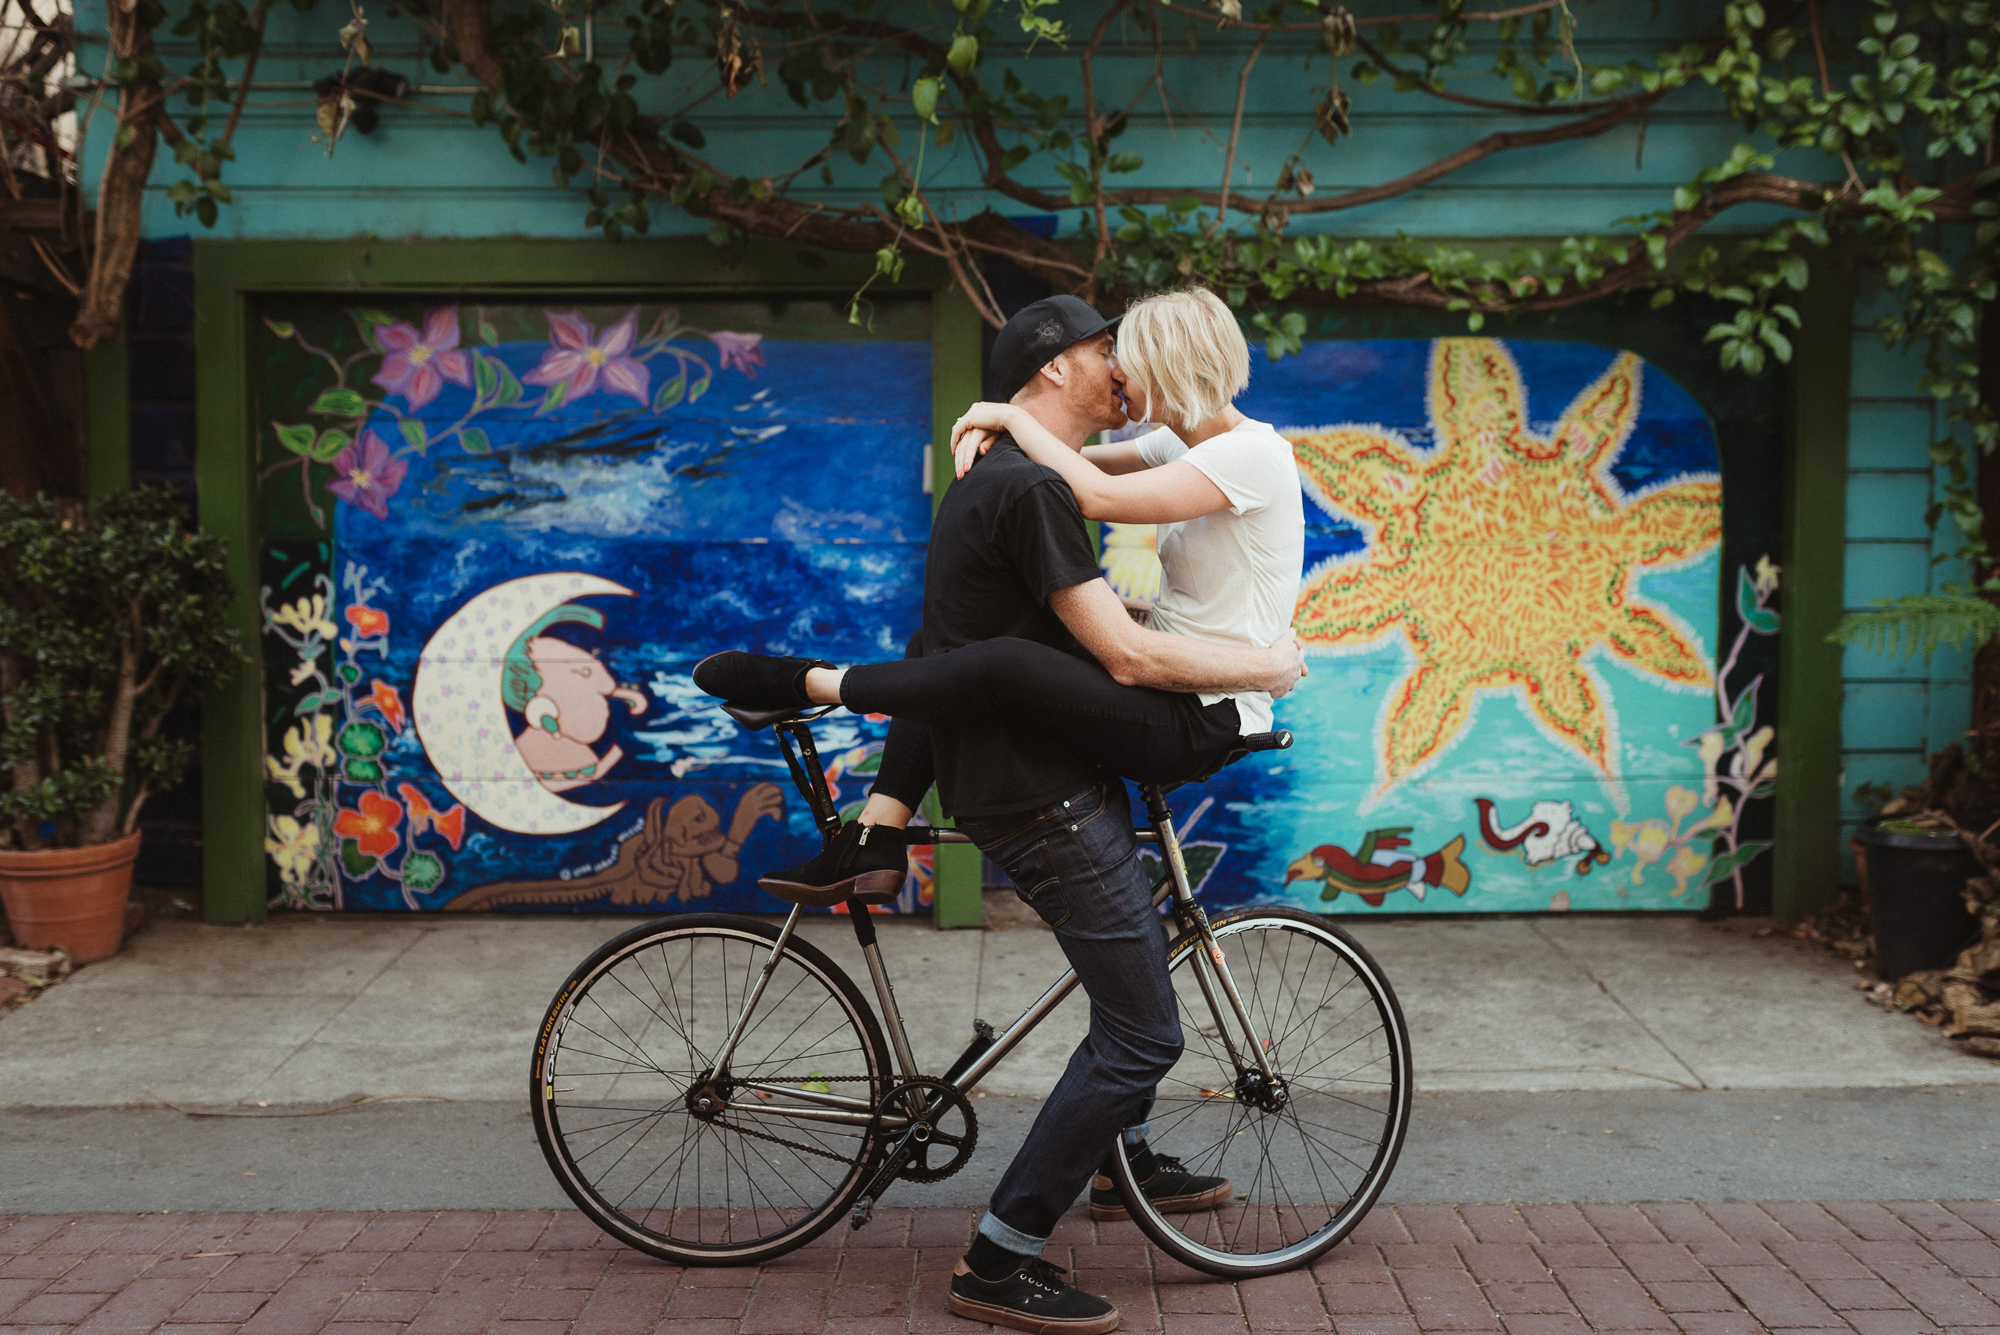 Portrait Photography on bikes for Engagement Session in San Fran